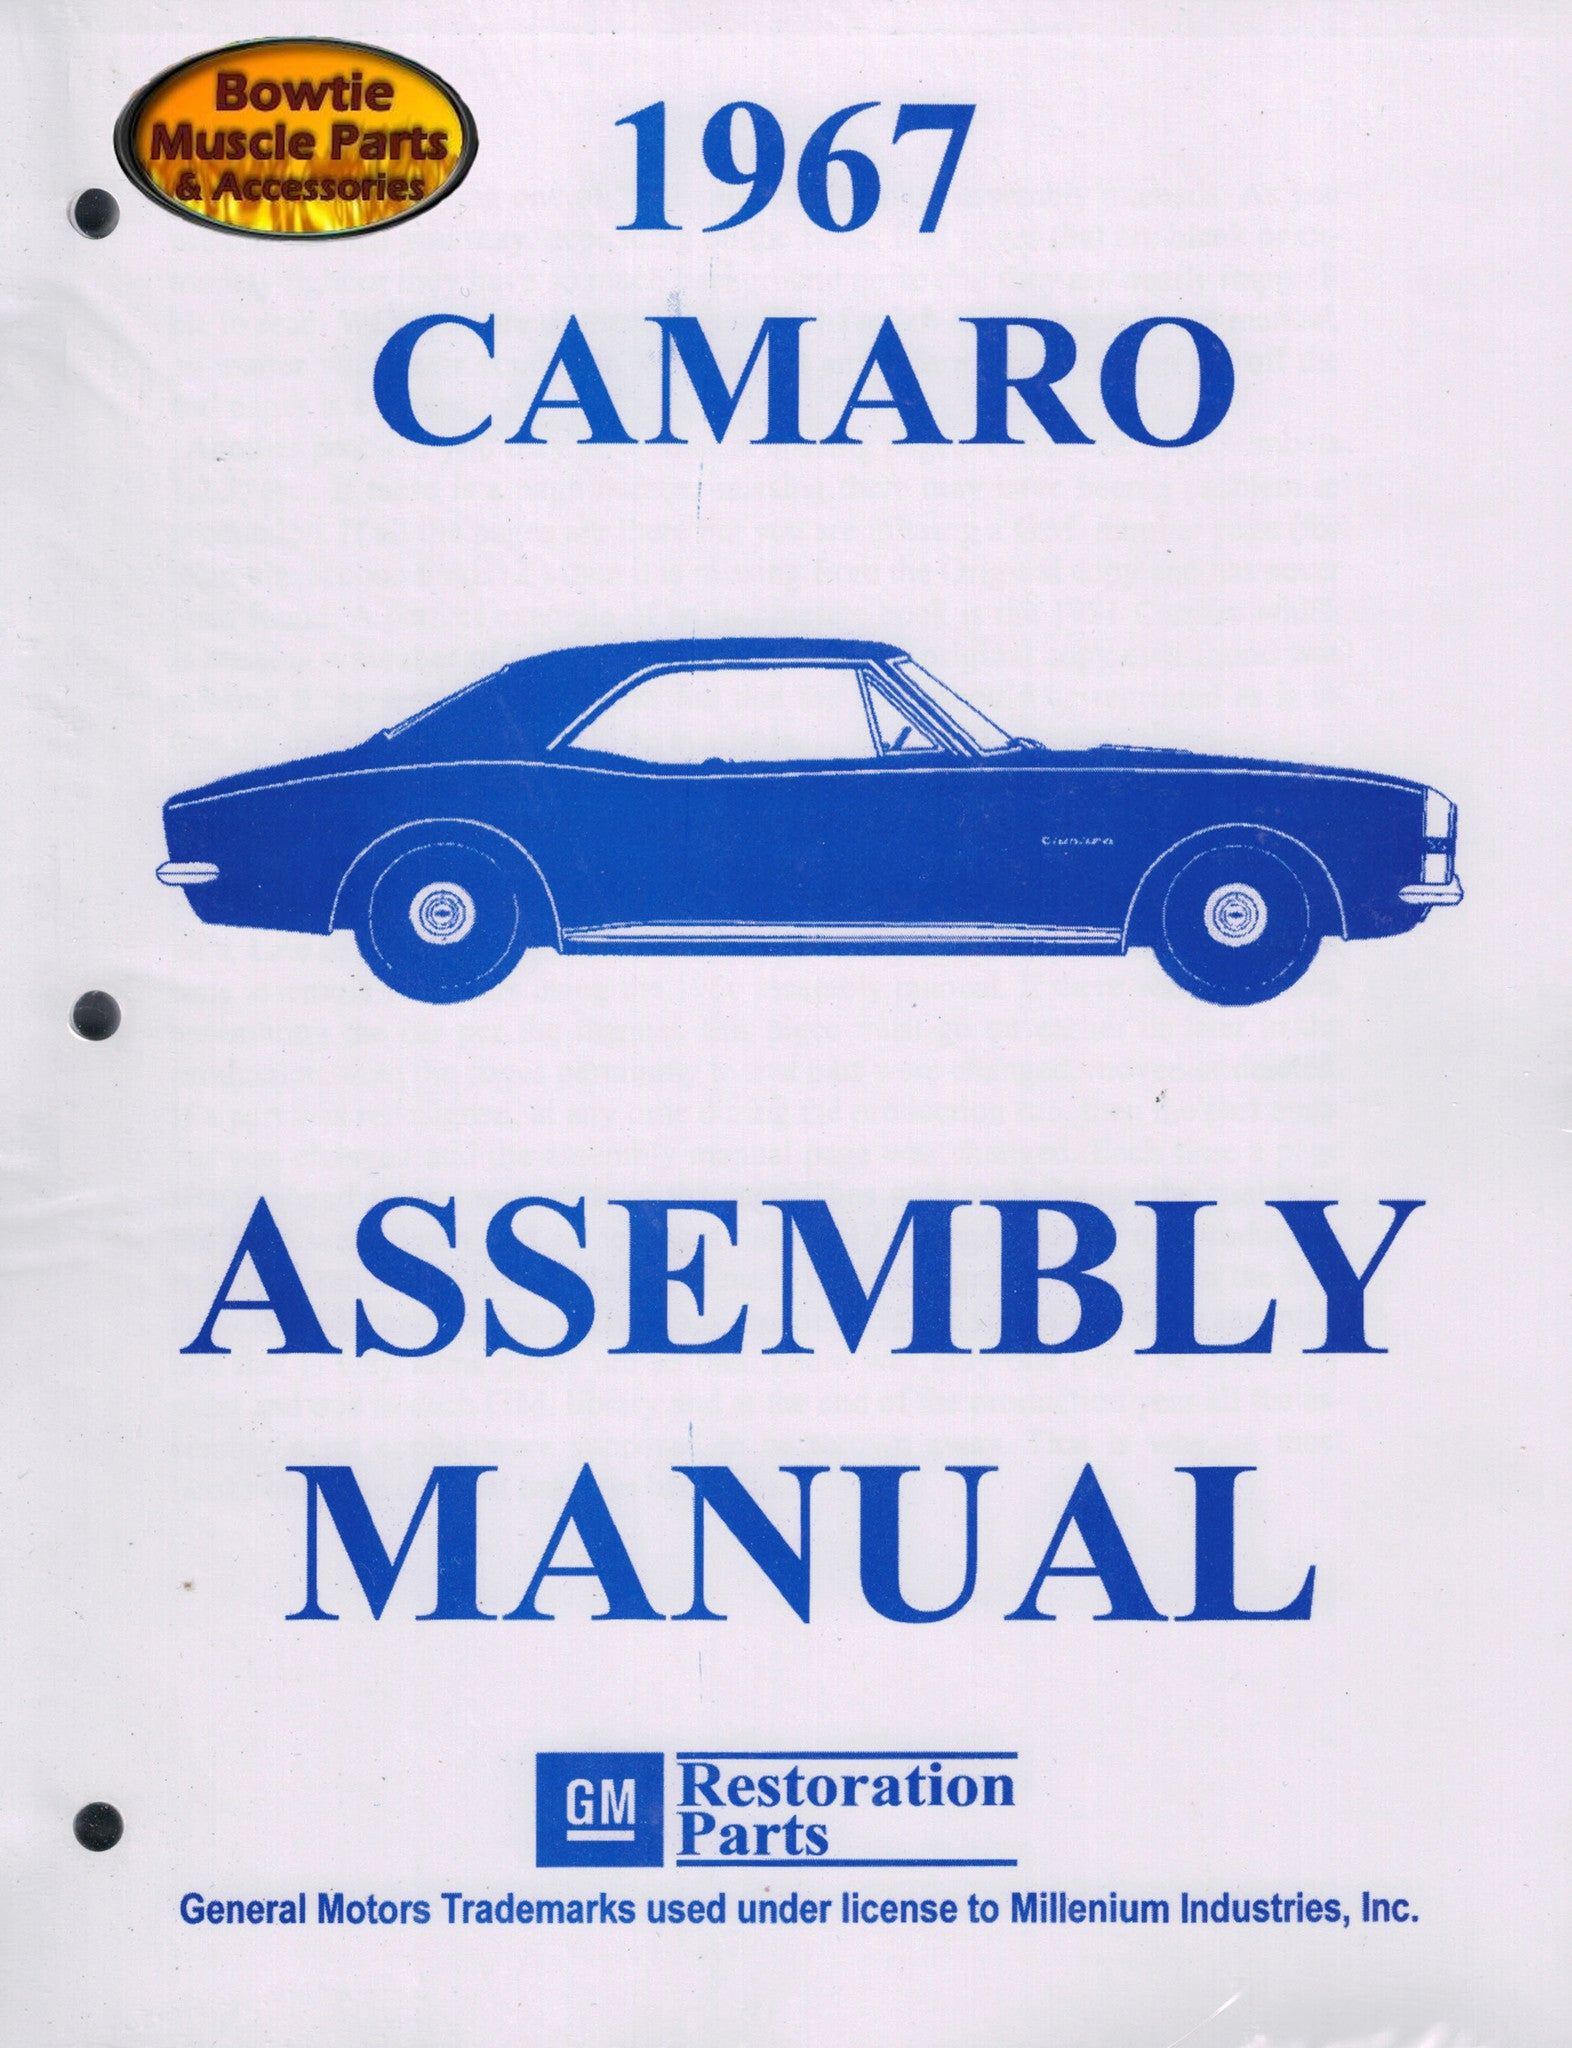 1967 67 camaro factory assembly manual z28 ss rs 418 pages rh bowtiemuscleparts com 67 camaro assembly manual pdf 66 Camaro